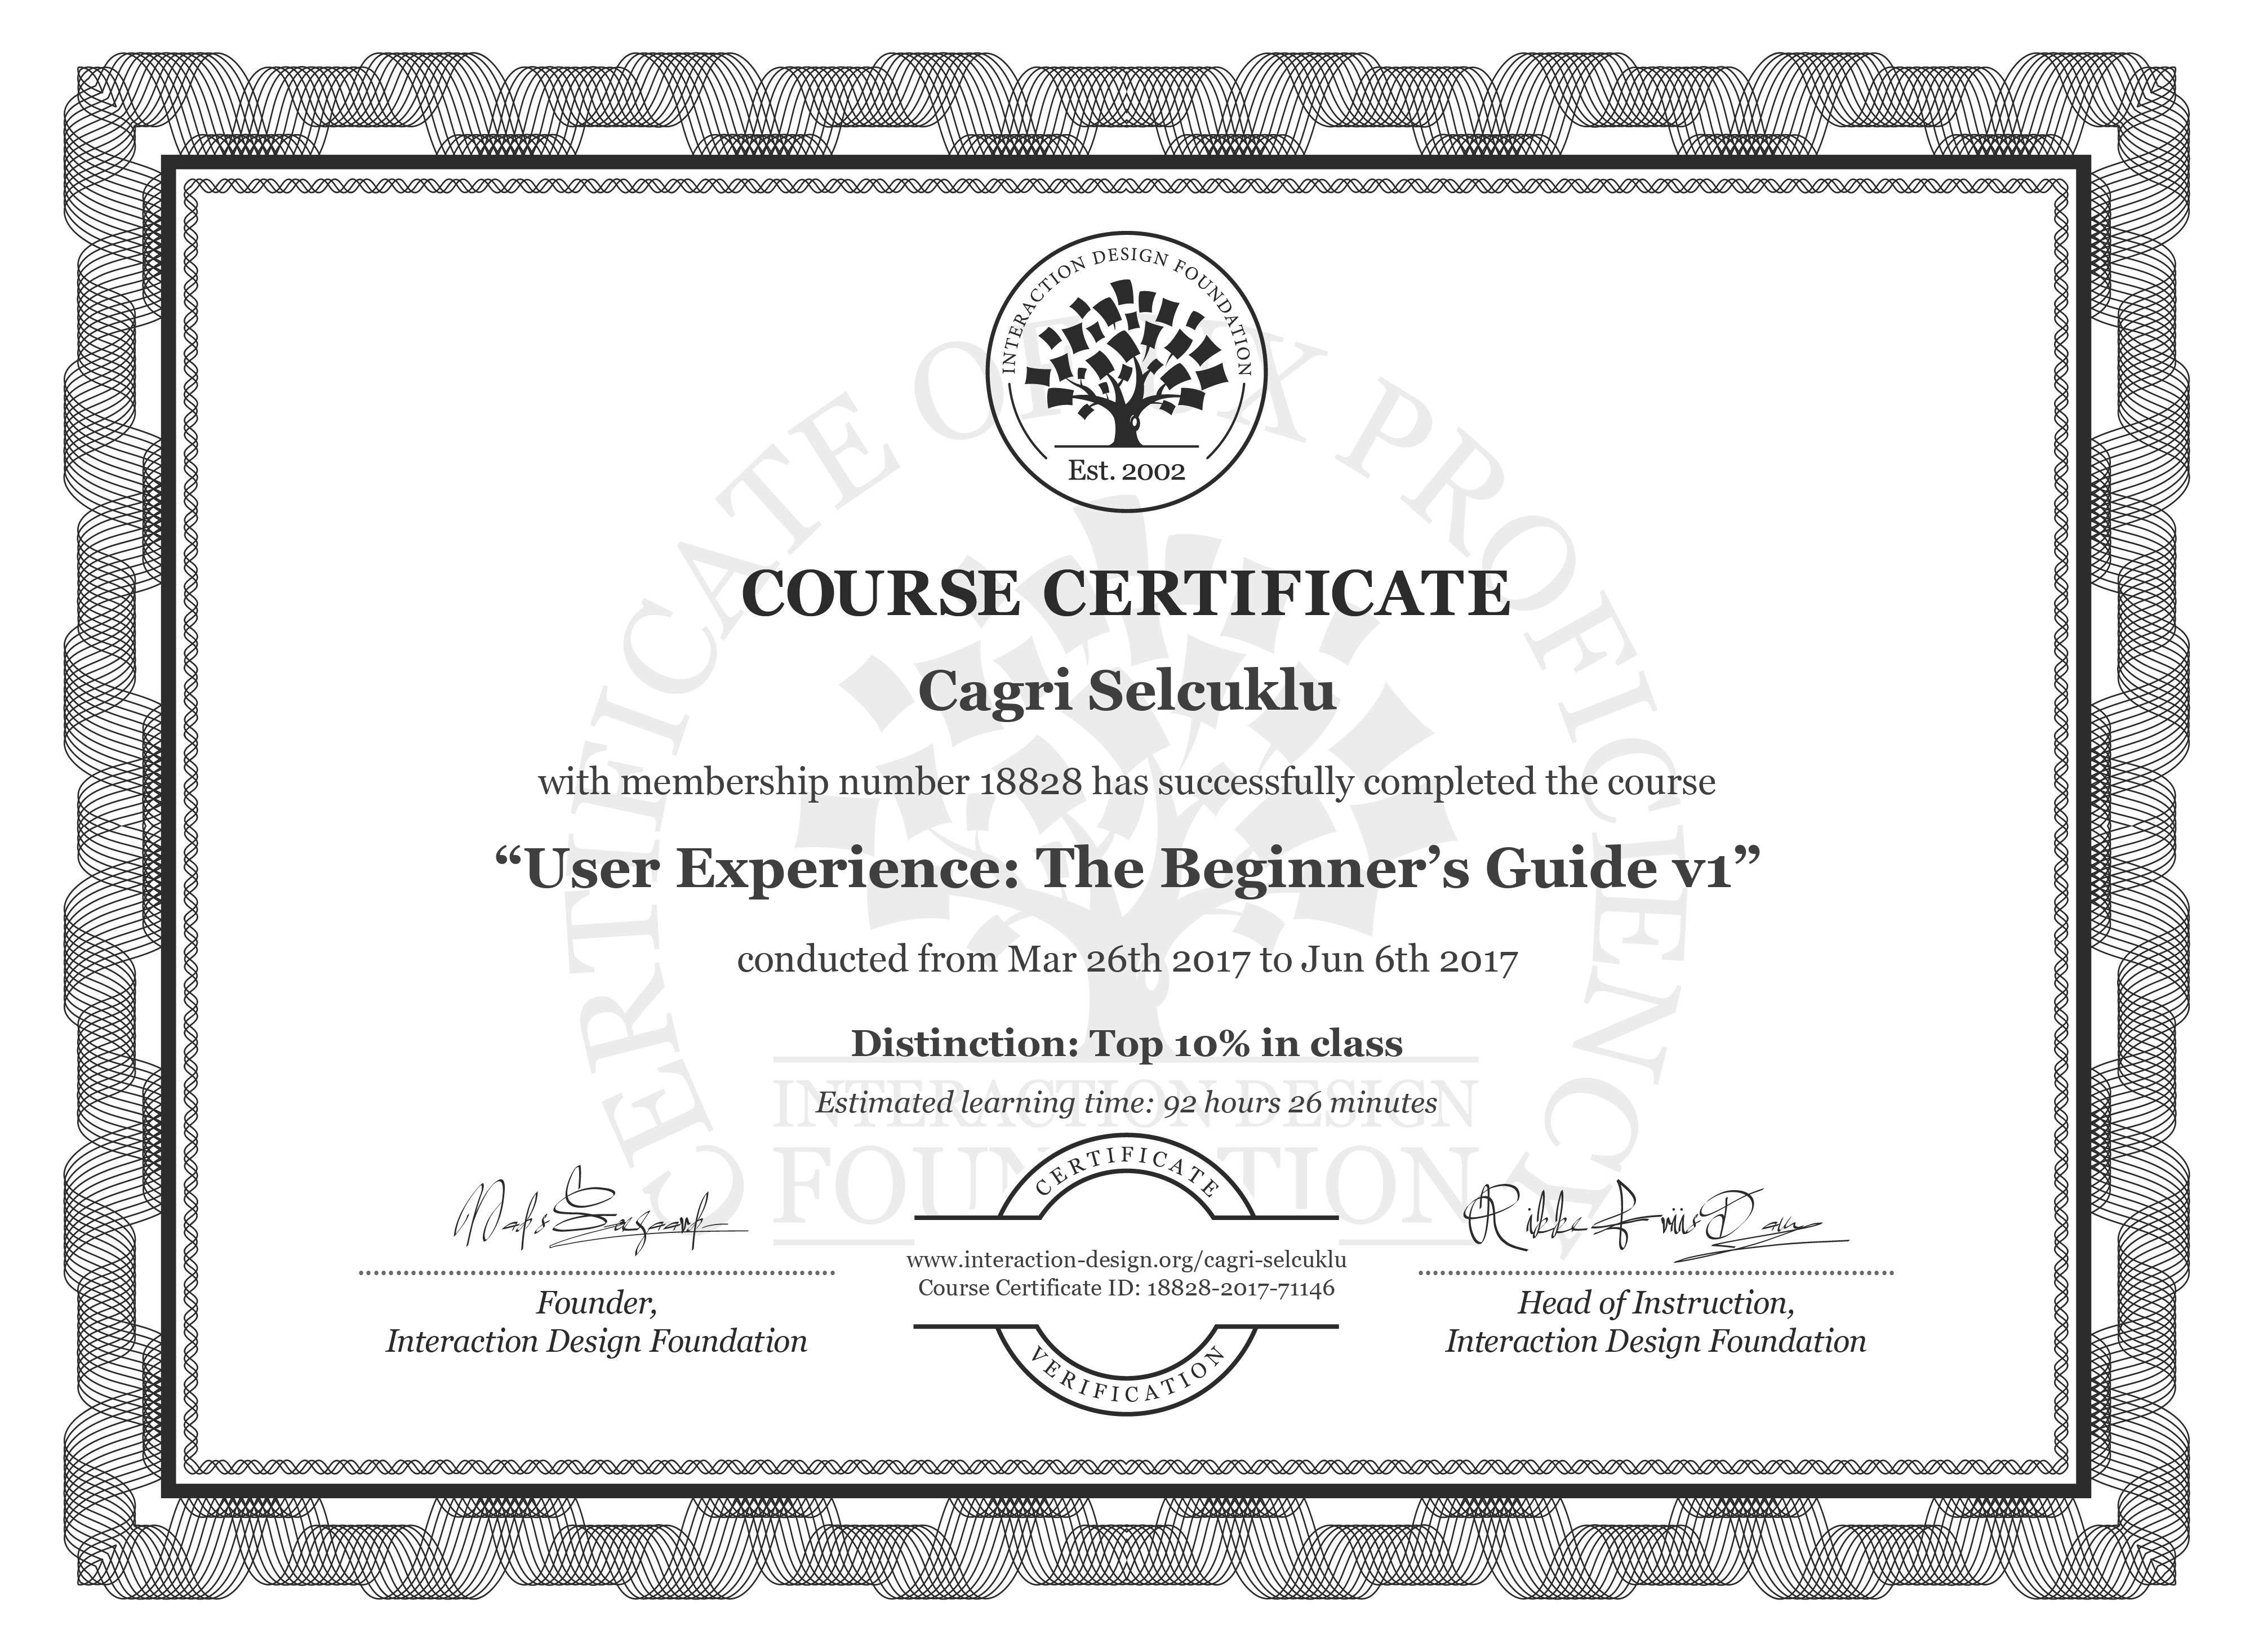 Cagri Selcuklu: Course Certificate - User Experience: The Beginner's Guide